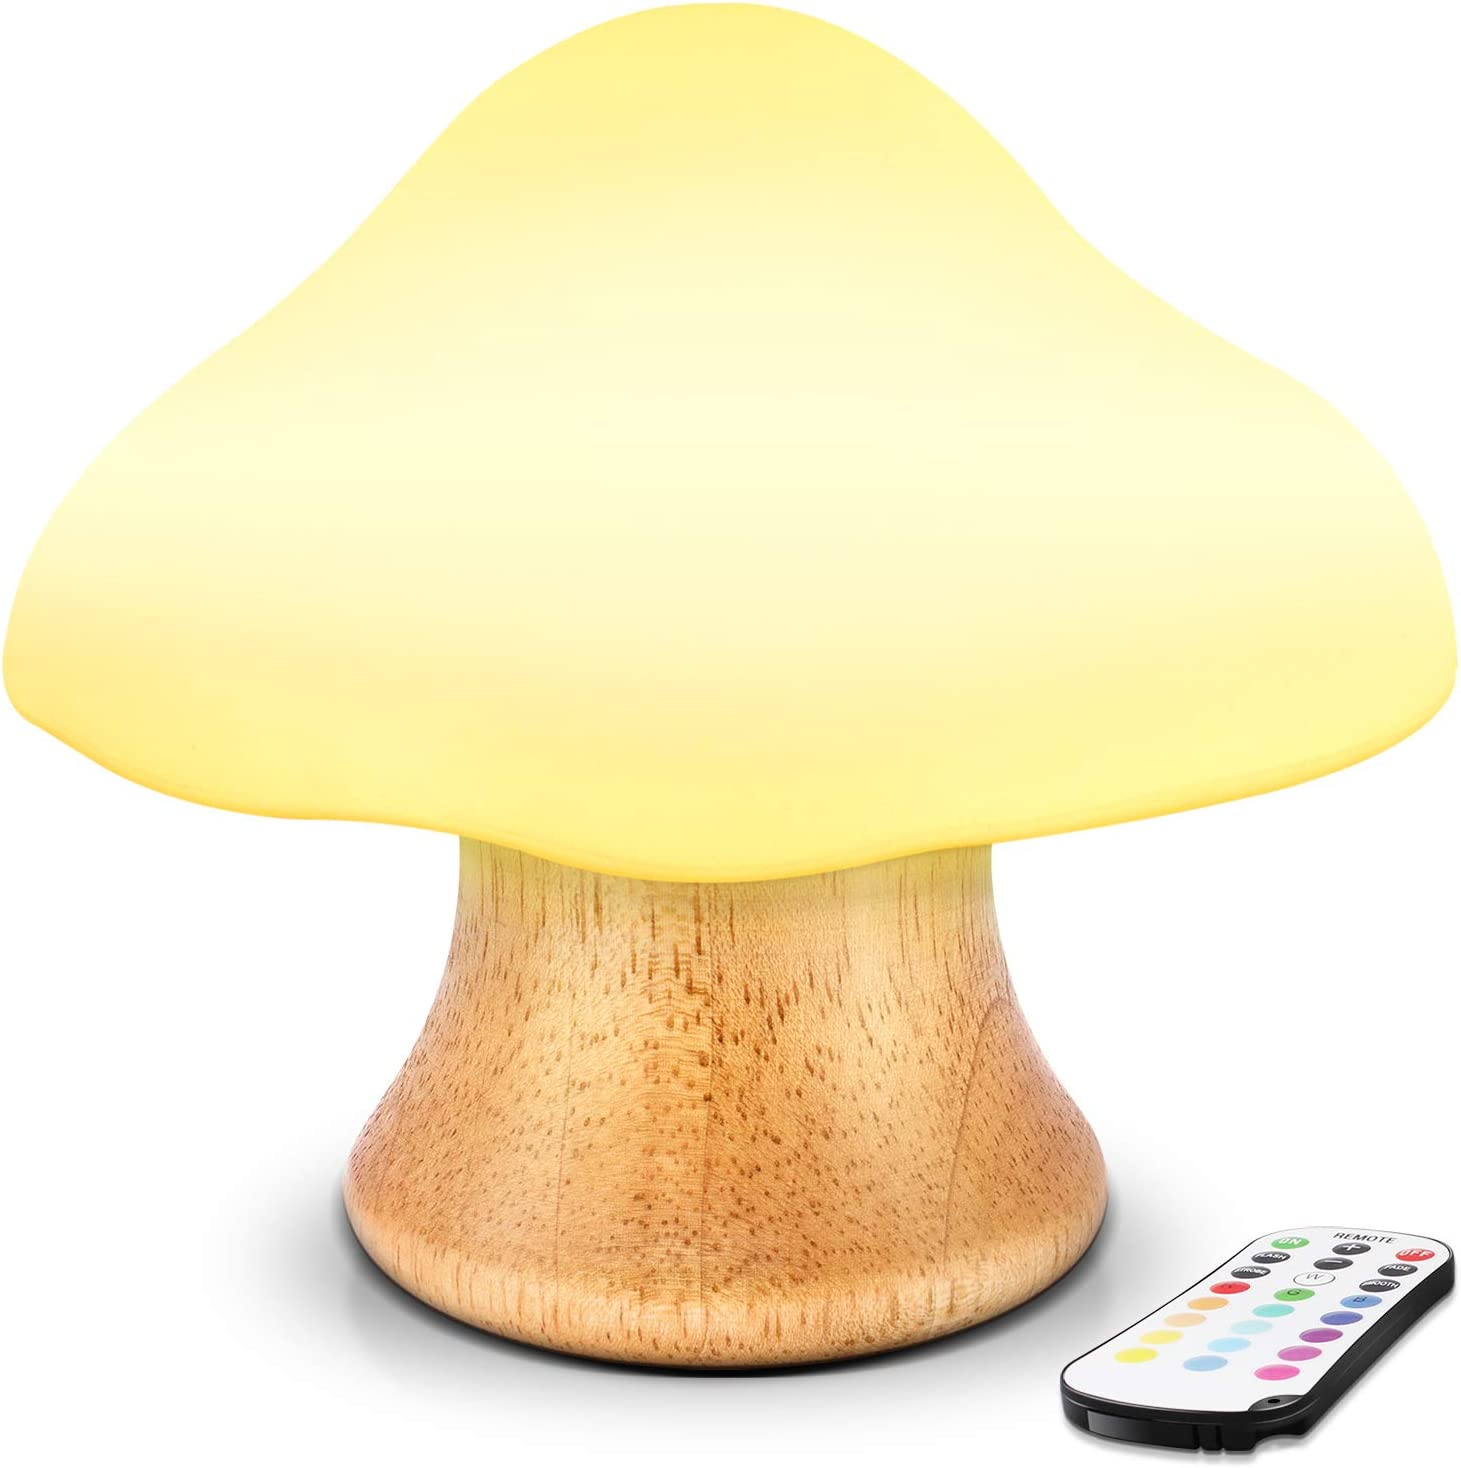 Children's Night Light ANGTUO Wooden Mushroom Lamp Silicone LED Bedside Nursery for Baby Breastfeeding Kids Bedroom - 16 Color Changing - 4 Brightness - 4 Light Mode Control by Remote. New Style(2020)